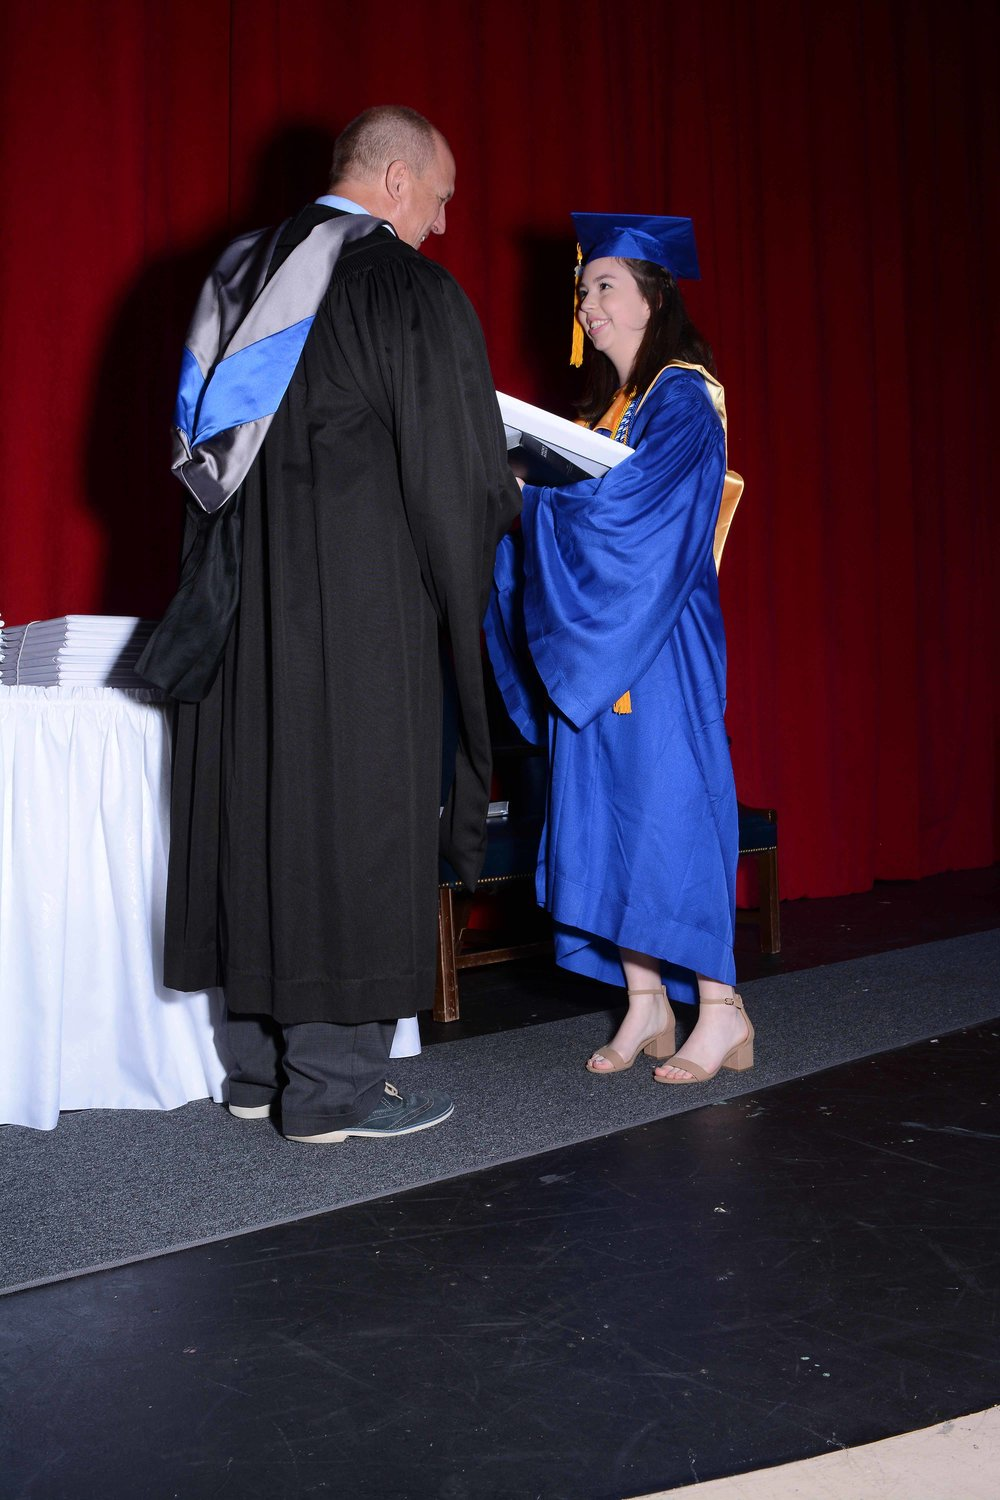 May14 Commencement34.jpg